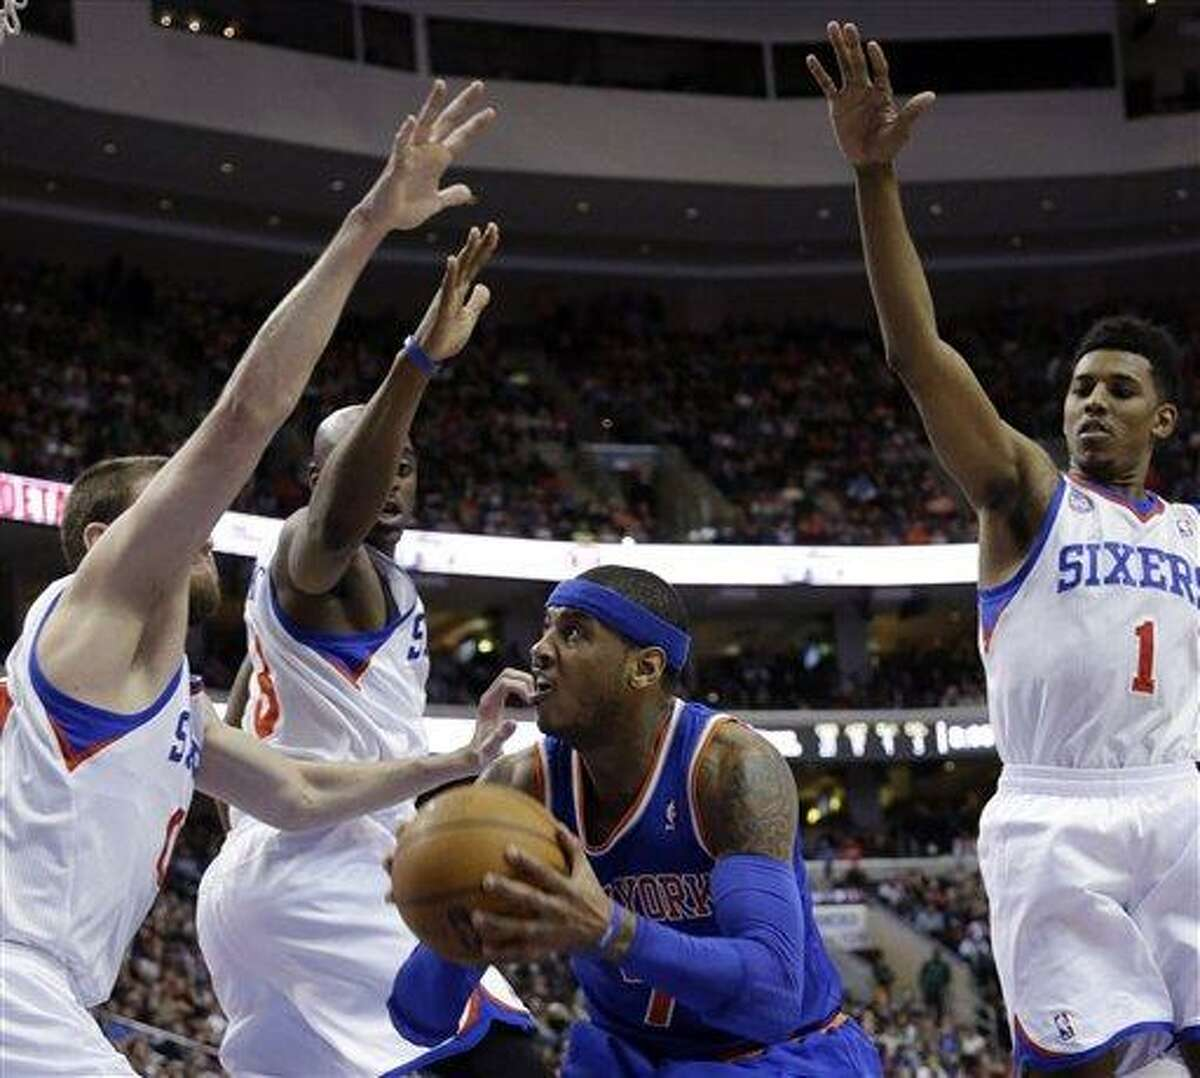 New York Knicks' Carmelo Anthony, center, tries to go up for a shot as, from left to right, Philadelphia 76ers' Spencer Hawes, Damien Wilkins and Nick Young defend during the first half of an NBA basketball game on Saturday, Jan. 26, 2013, in Philadelphia. (AP Photo/Matt Slocum)